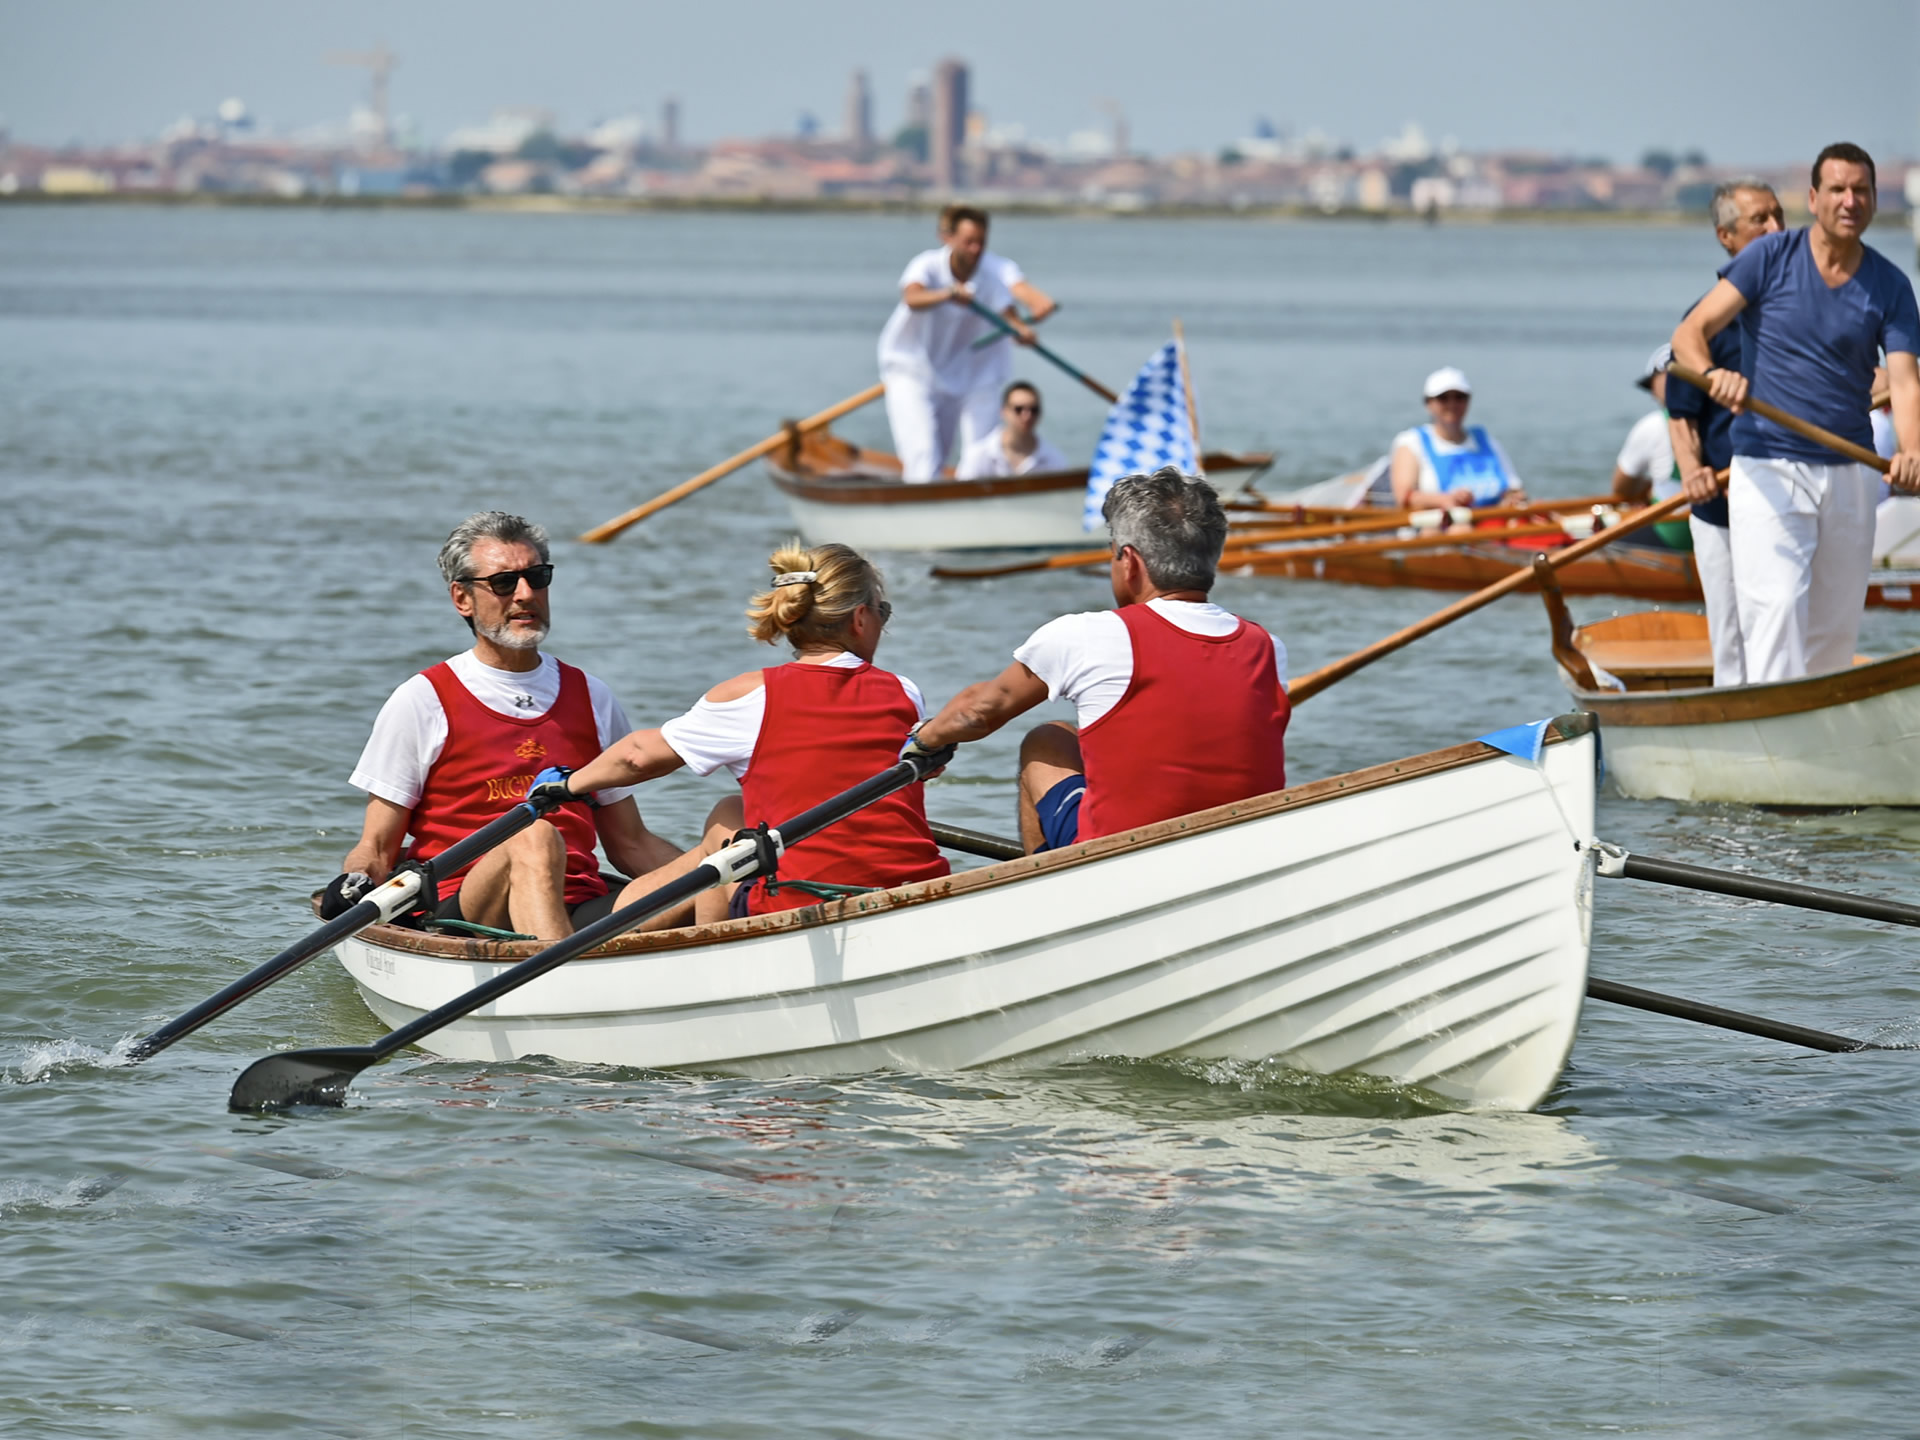 Classic-Whitehall-Spirit-17-rowboat-Italy-Whitehall-Rowing-and-Sail